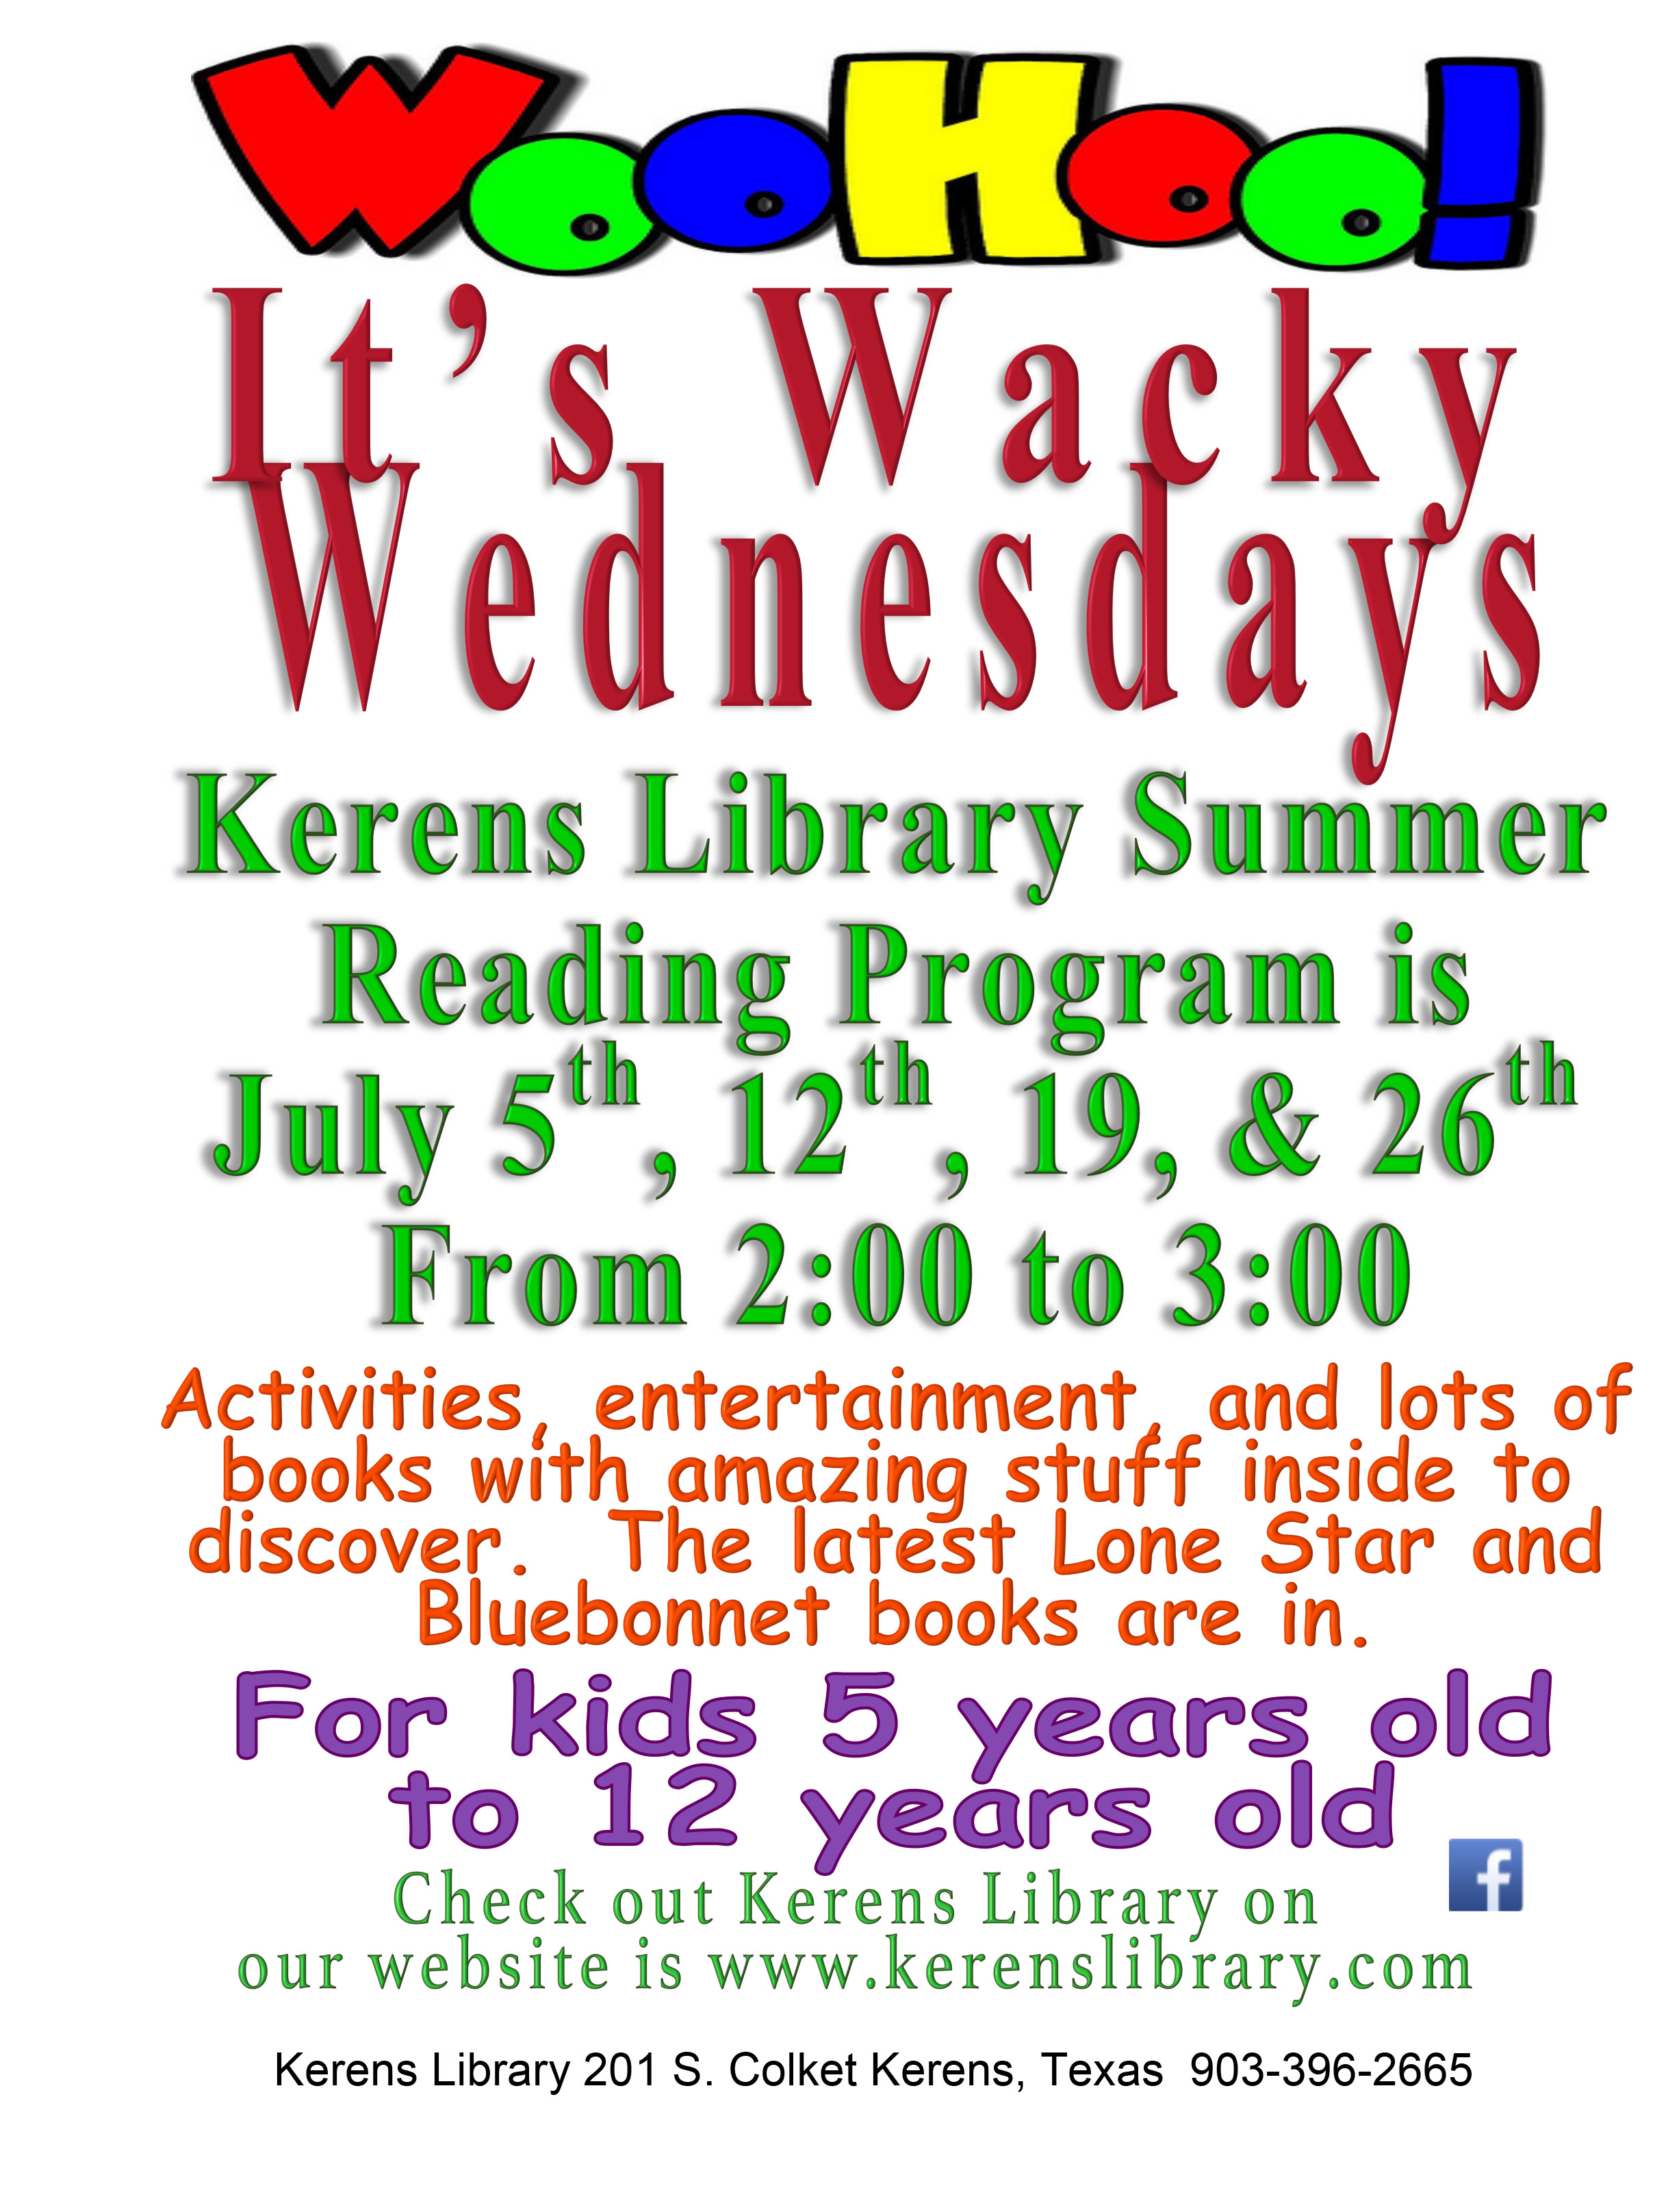 Summer Reading 2017 Kerens Library